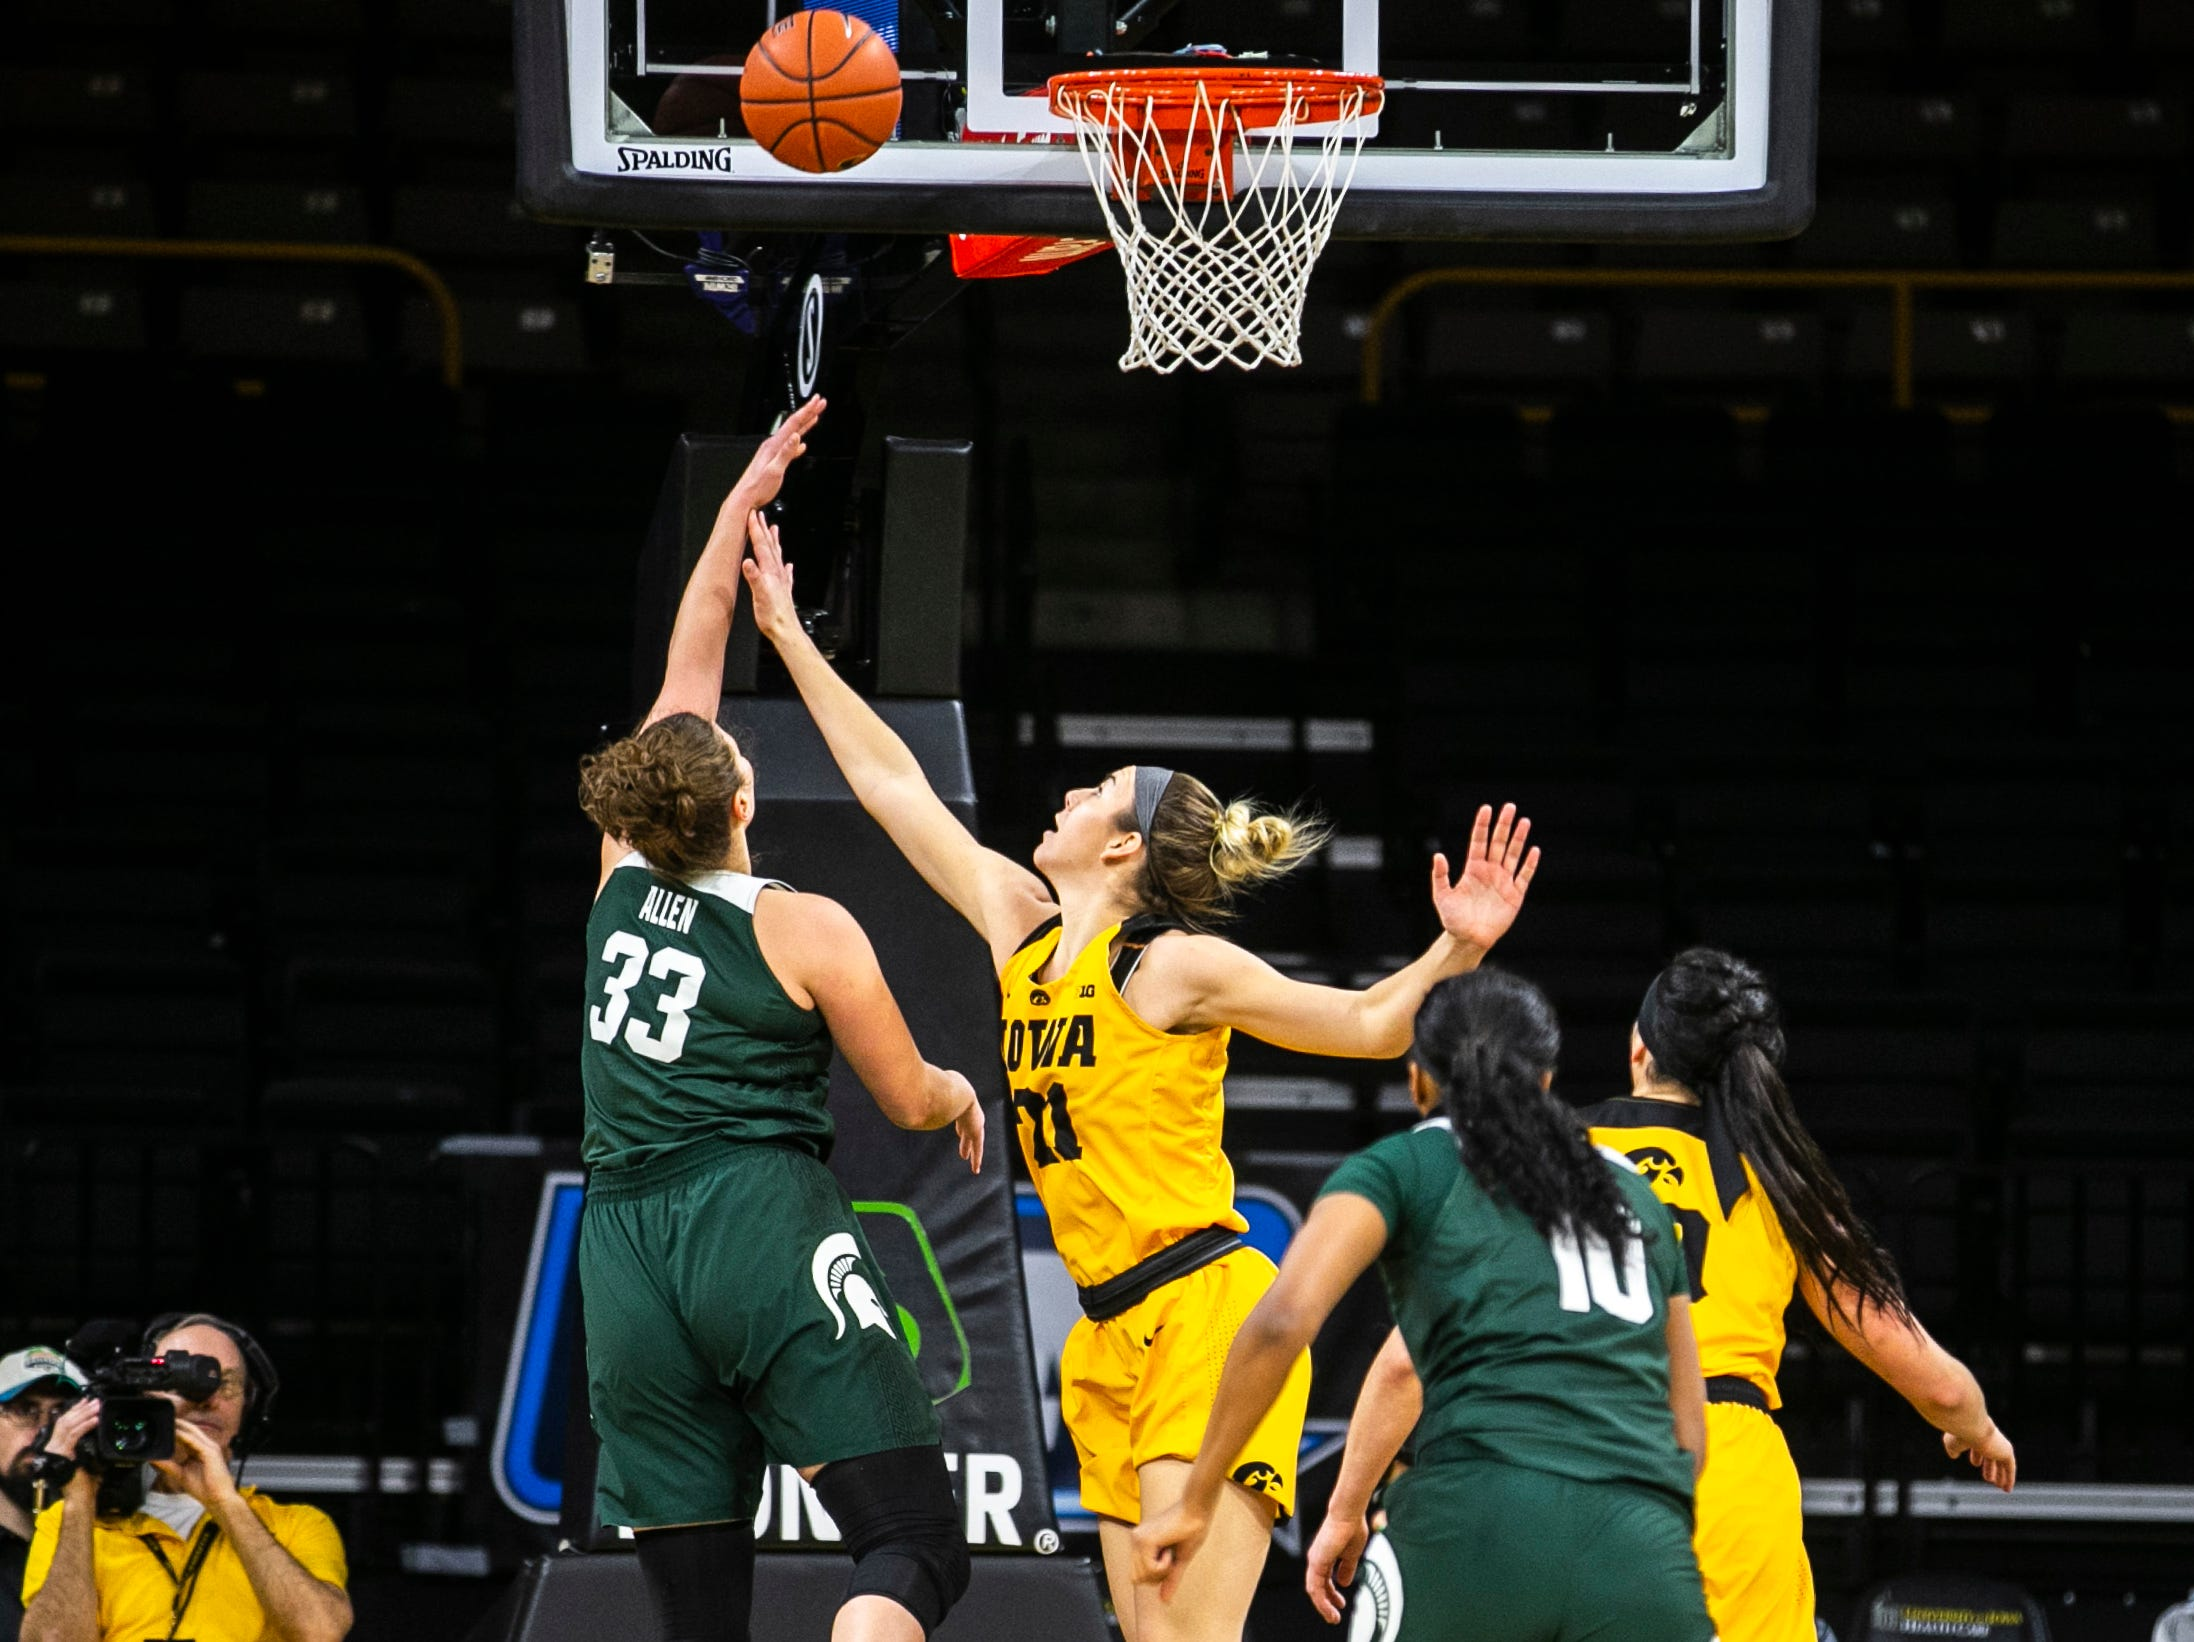 Iowa forward Hannah Stewart (21) defends Michigan State center Jenna Allen (33) during a NCAA Big Ten Conference women's basketball game on Thursday, Feb. 7, 2019 at Carver-Hawkeye Arena in Iowa City, Iowa.